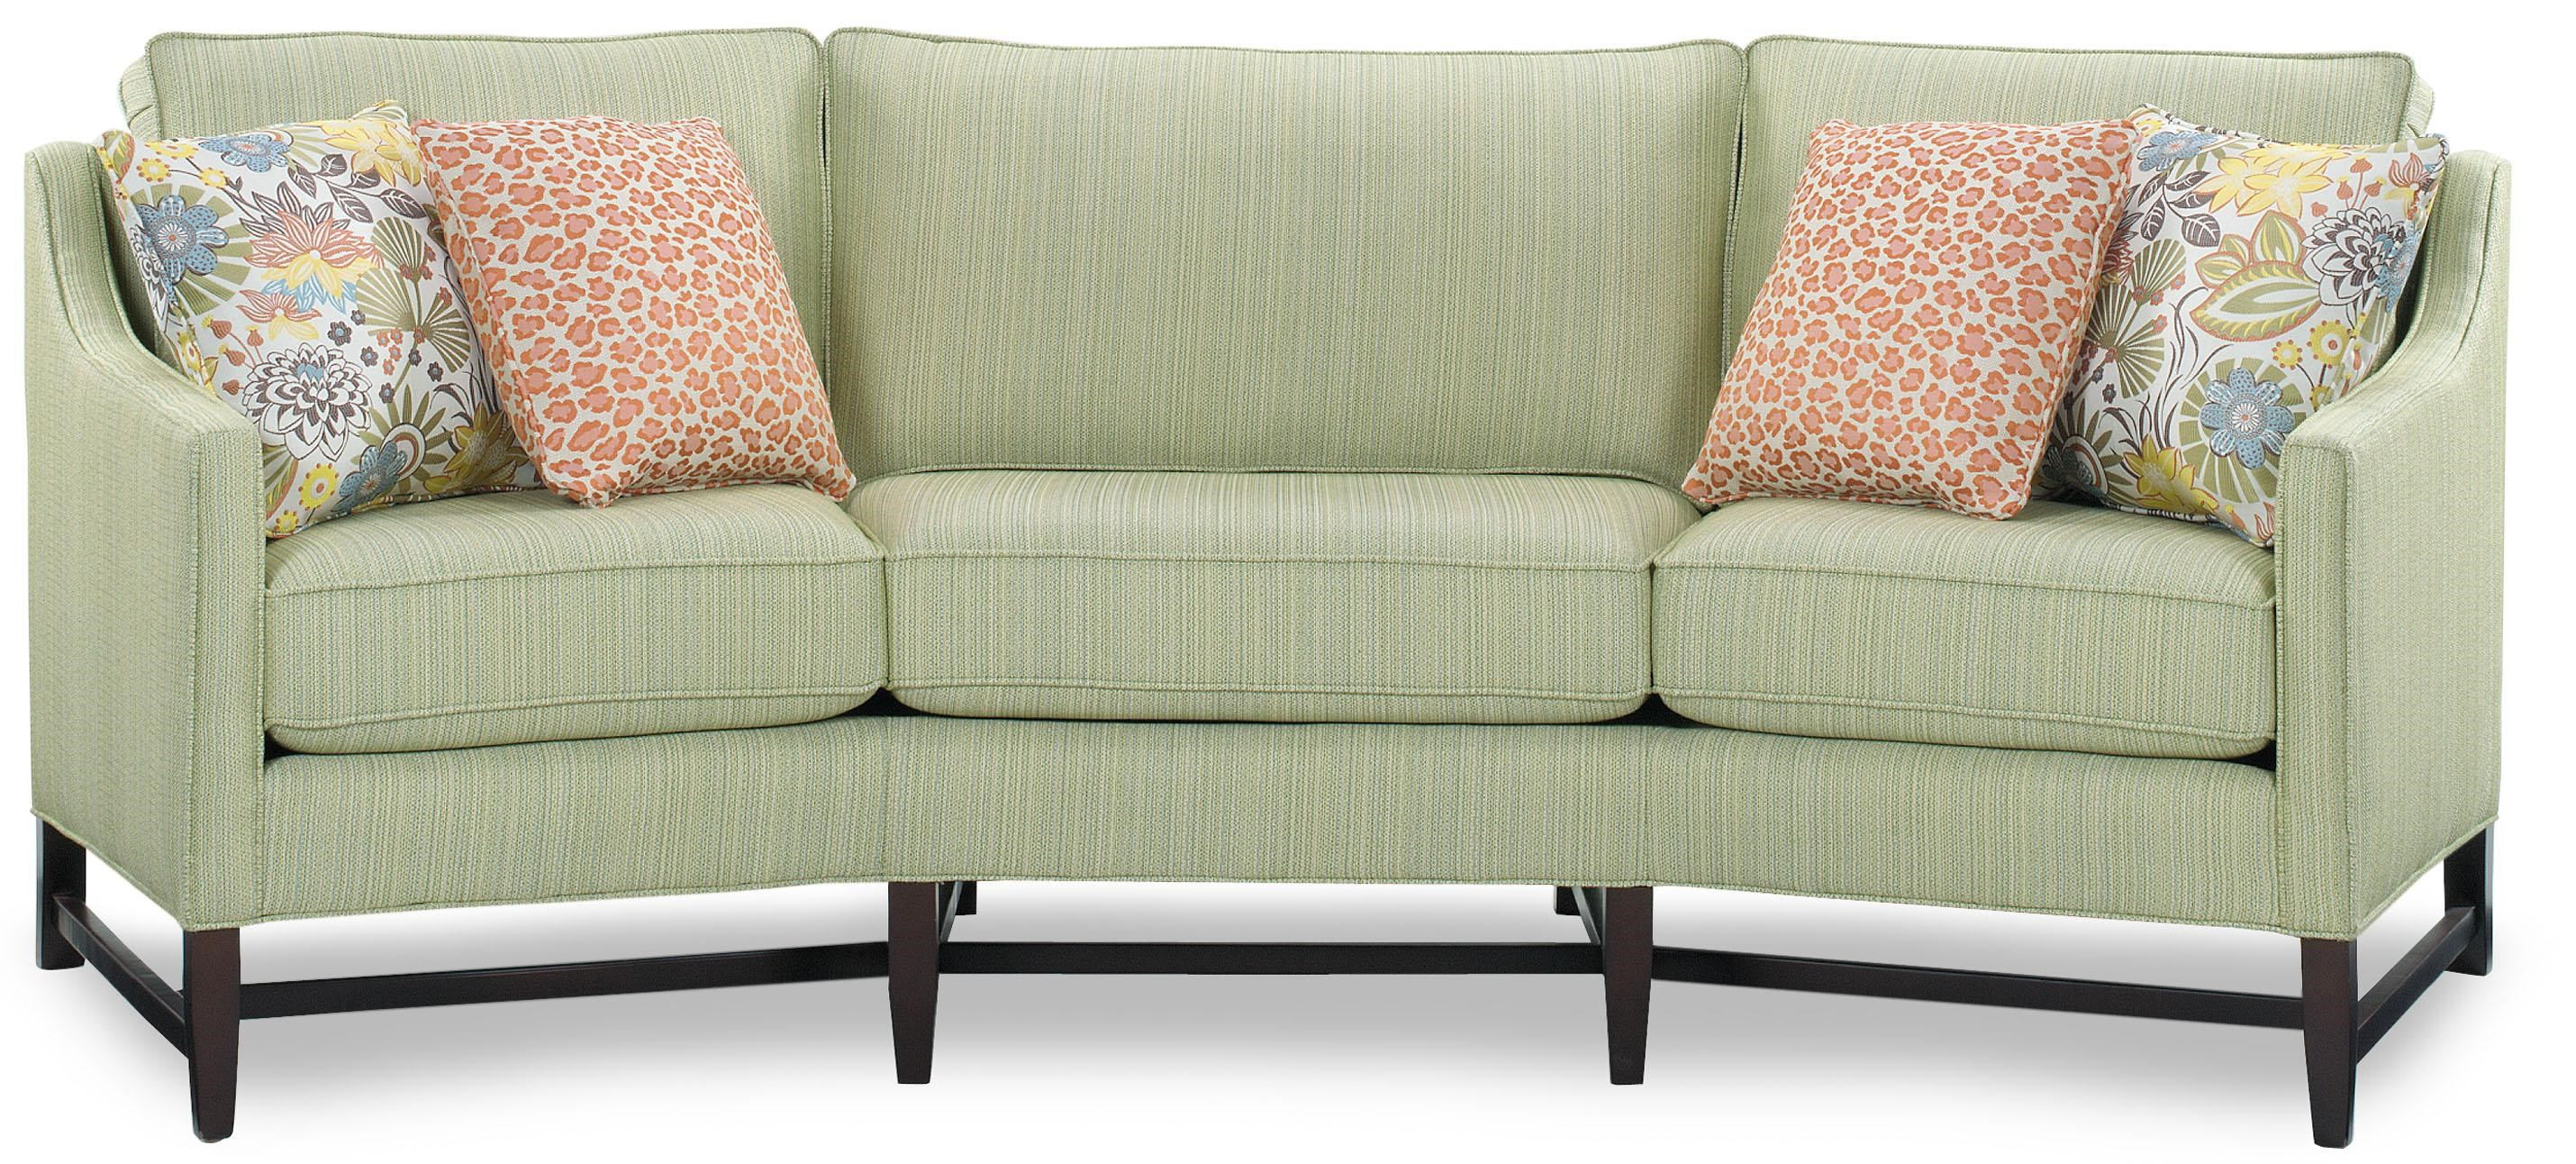 Delicieux Temple Furniture SassyConversation Sofa